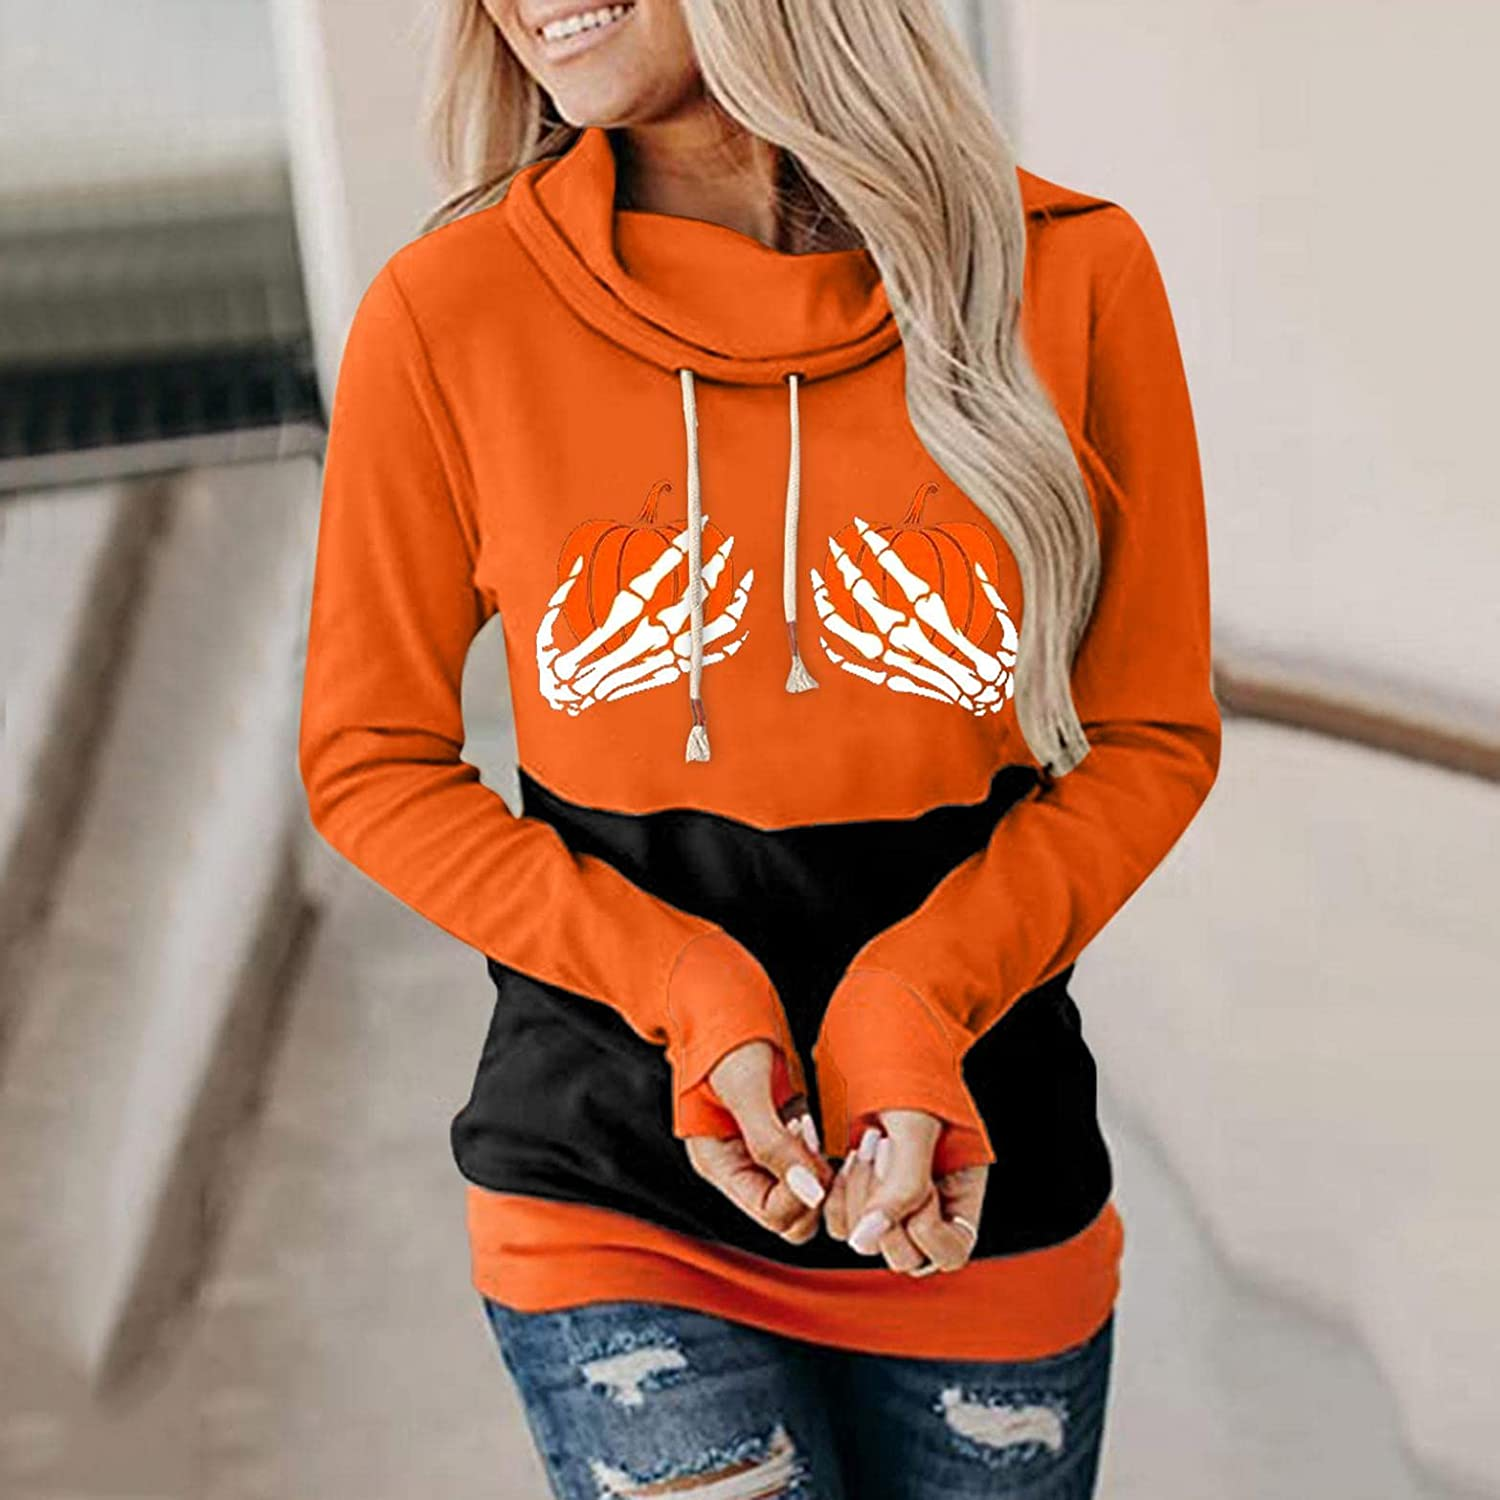 UOCUFY Hoodies for Women, Womens Halloween Funny Graphic Cowl Neck Sweatshirts Pullover Casual Long Sleeve Hoodies Tops